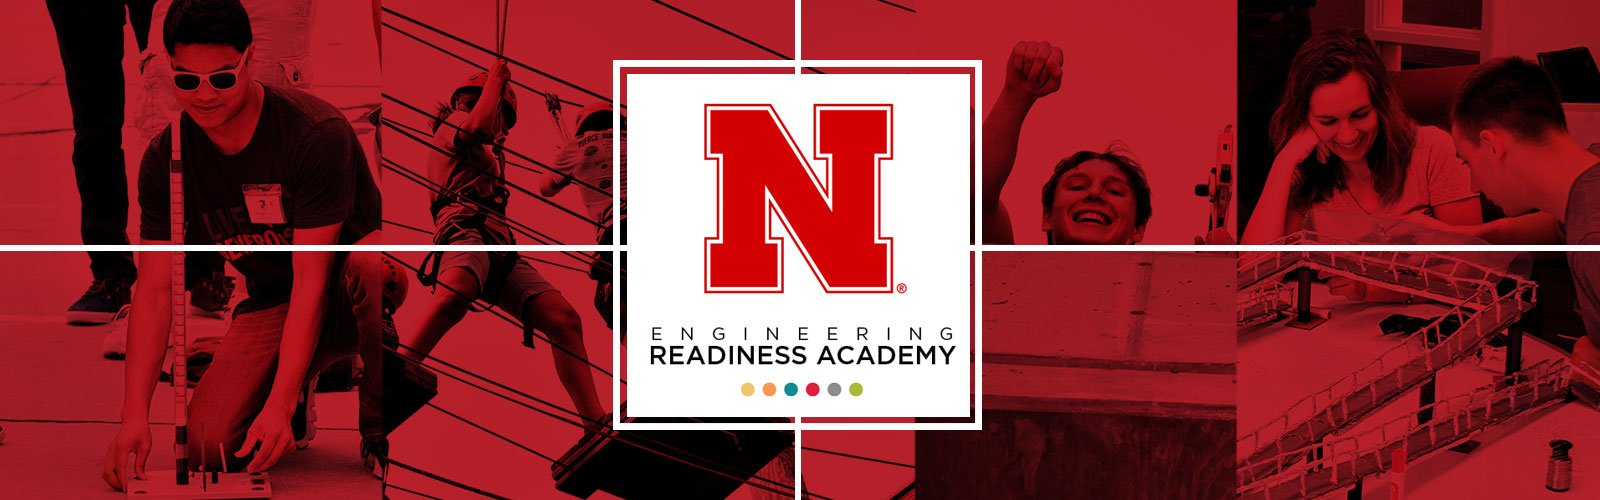 Engineering Readiness Academy